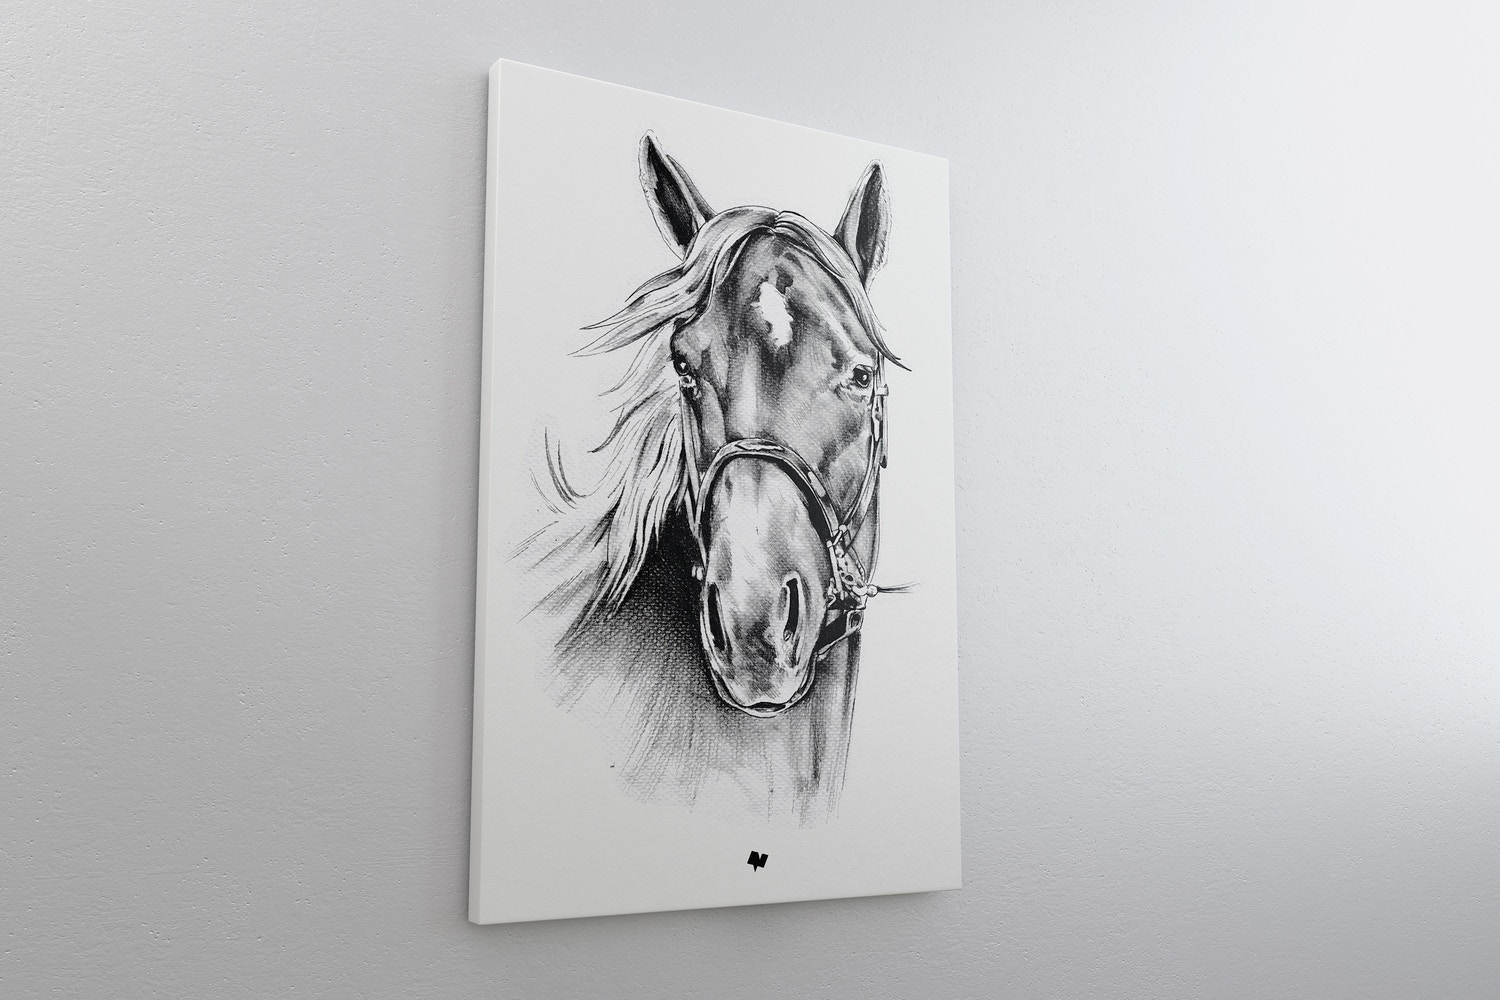 2:3 Portrait Canvas Mockup Hanging on Wall, Left View